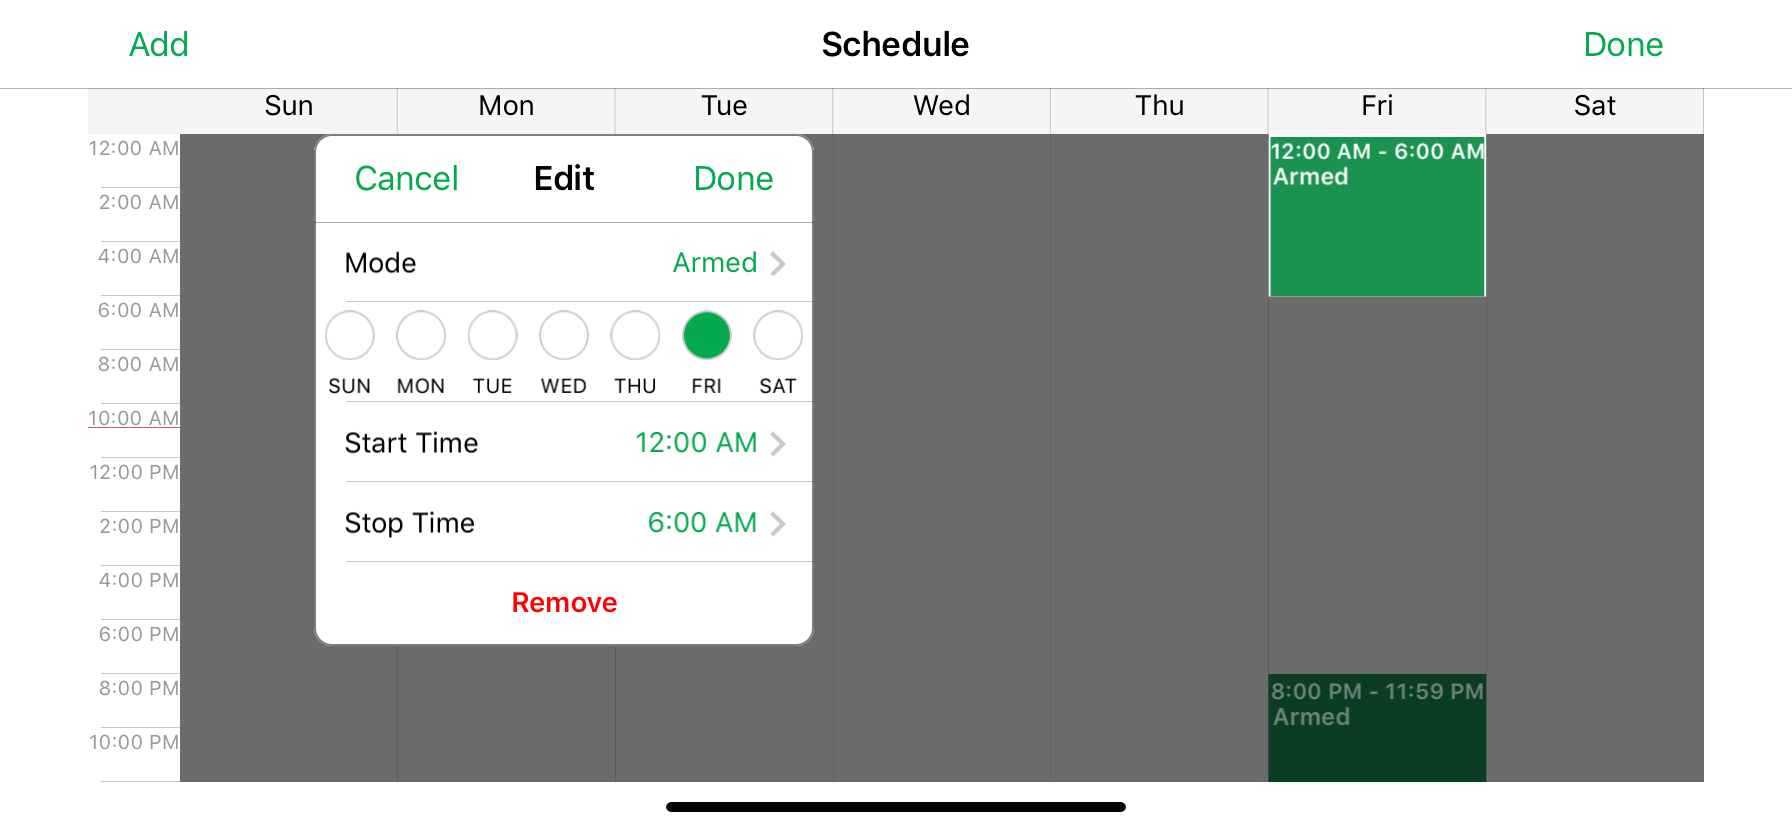 How can I set a schedule for my camera in my Arlo account?